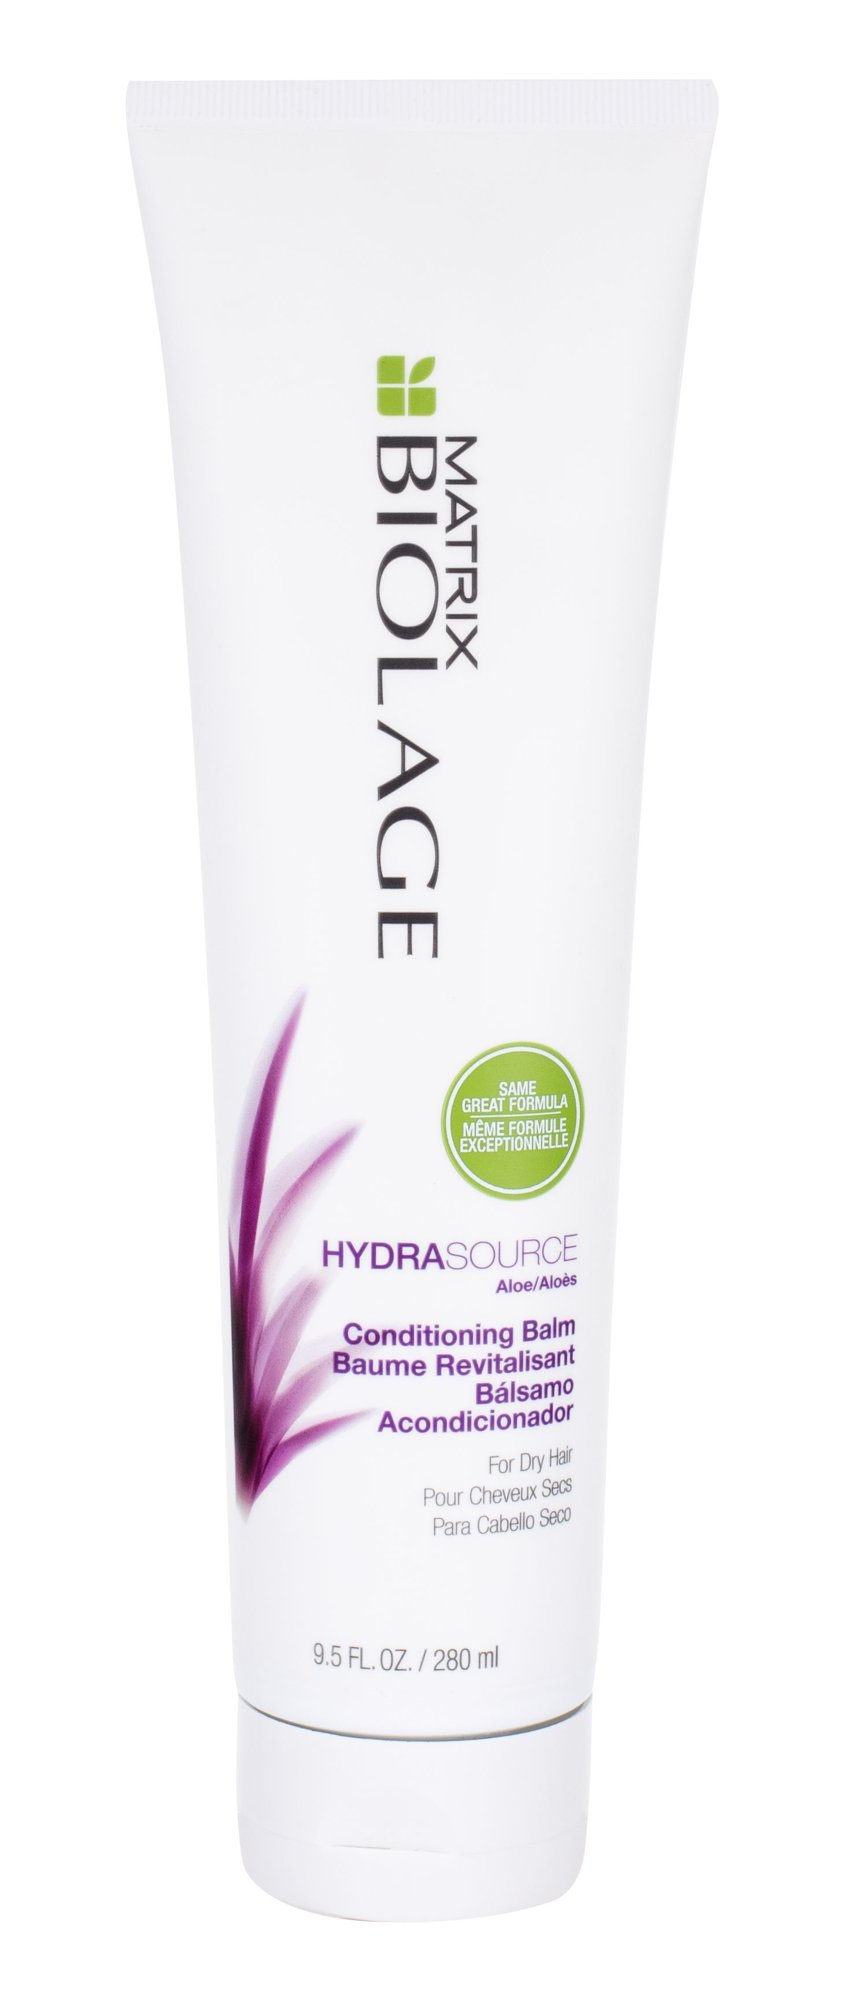 Matrix Biolage Hydrasource Conditioning Balm Cosmetic 280ml